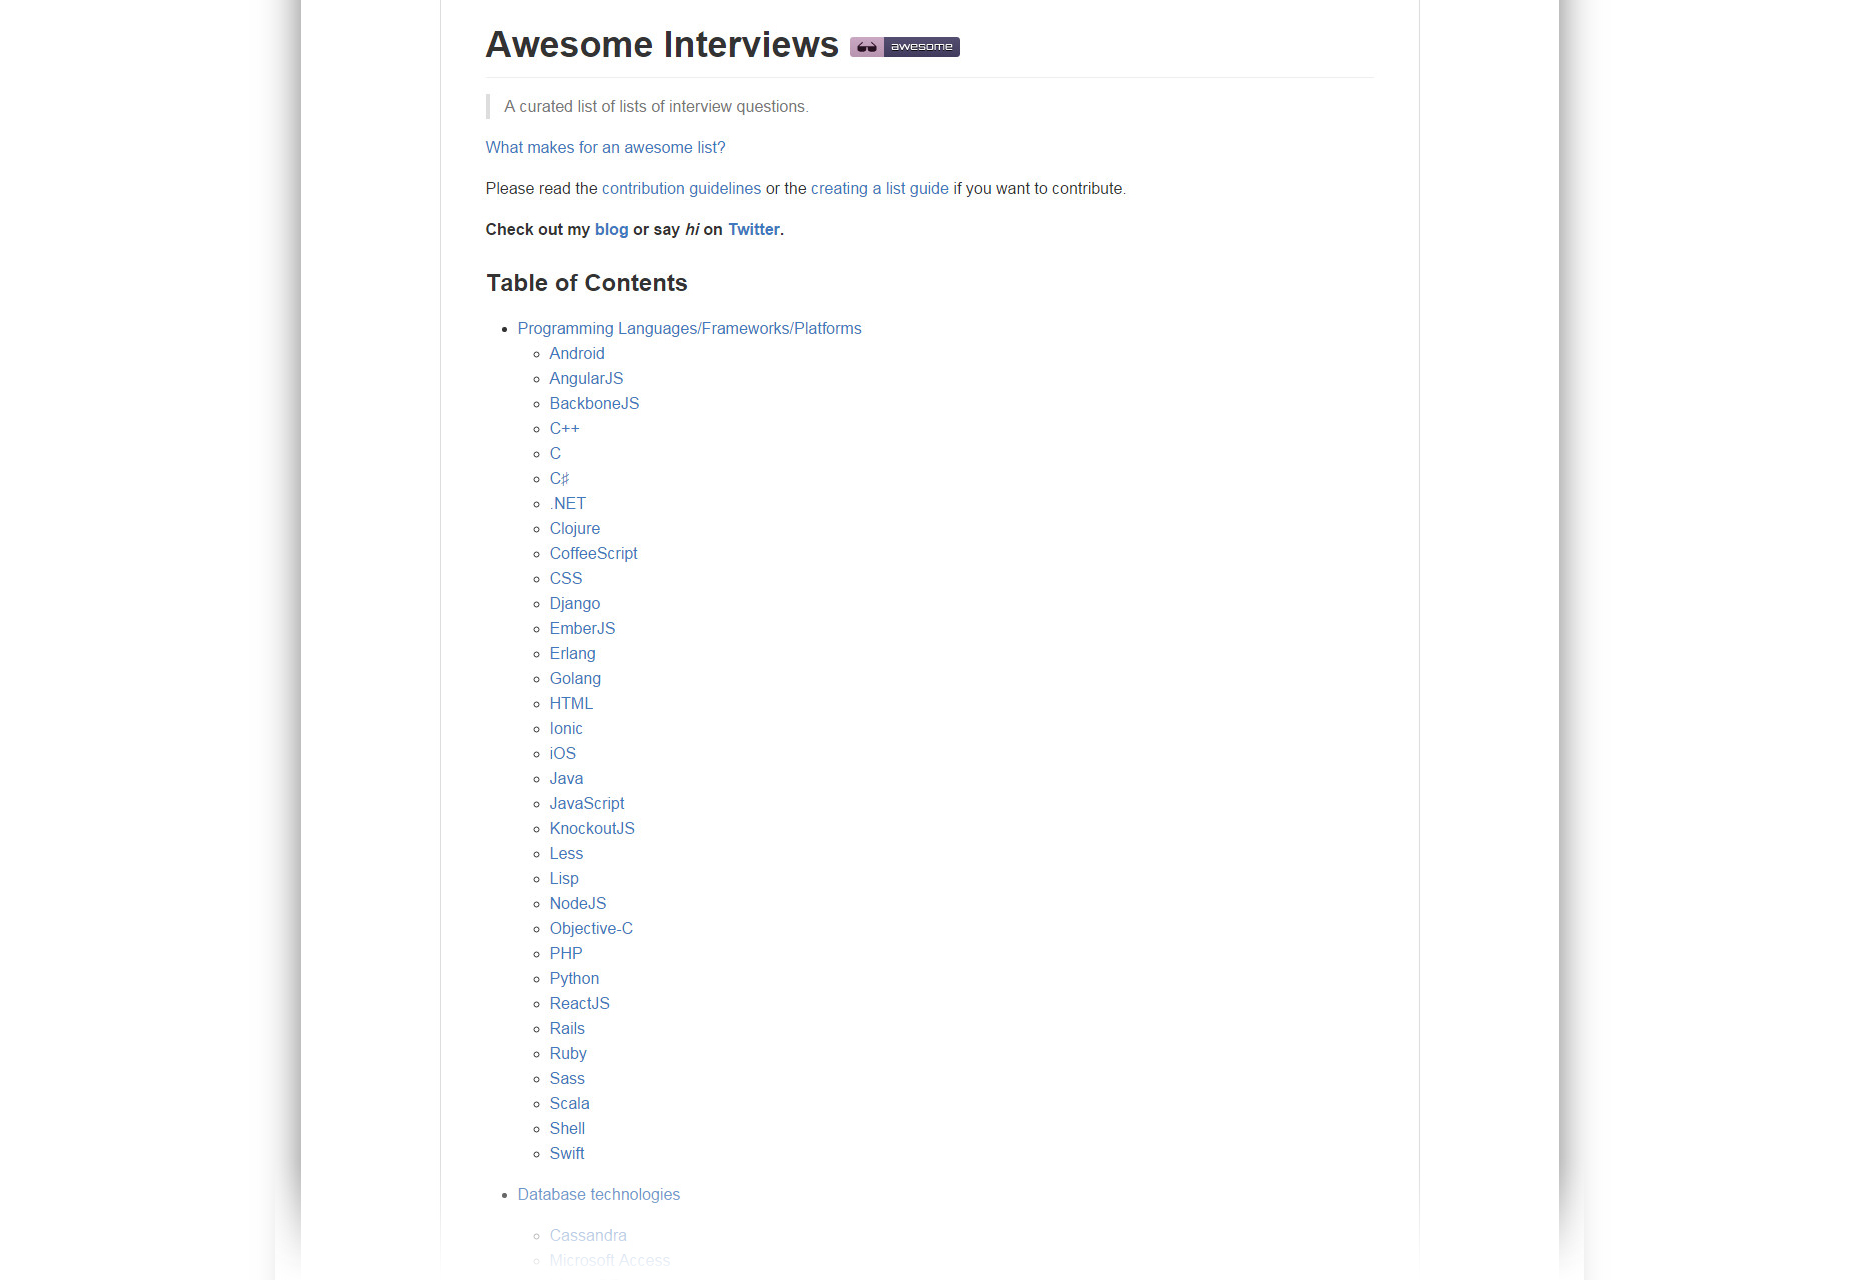 Awesome Interviews: Open Source Development Interviews Collection